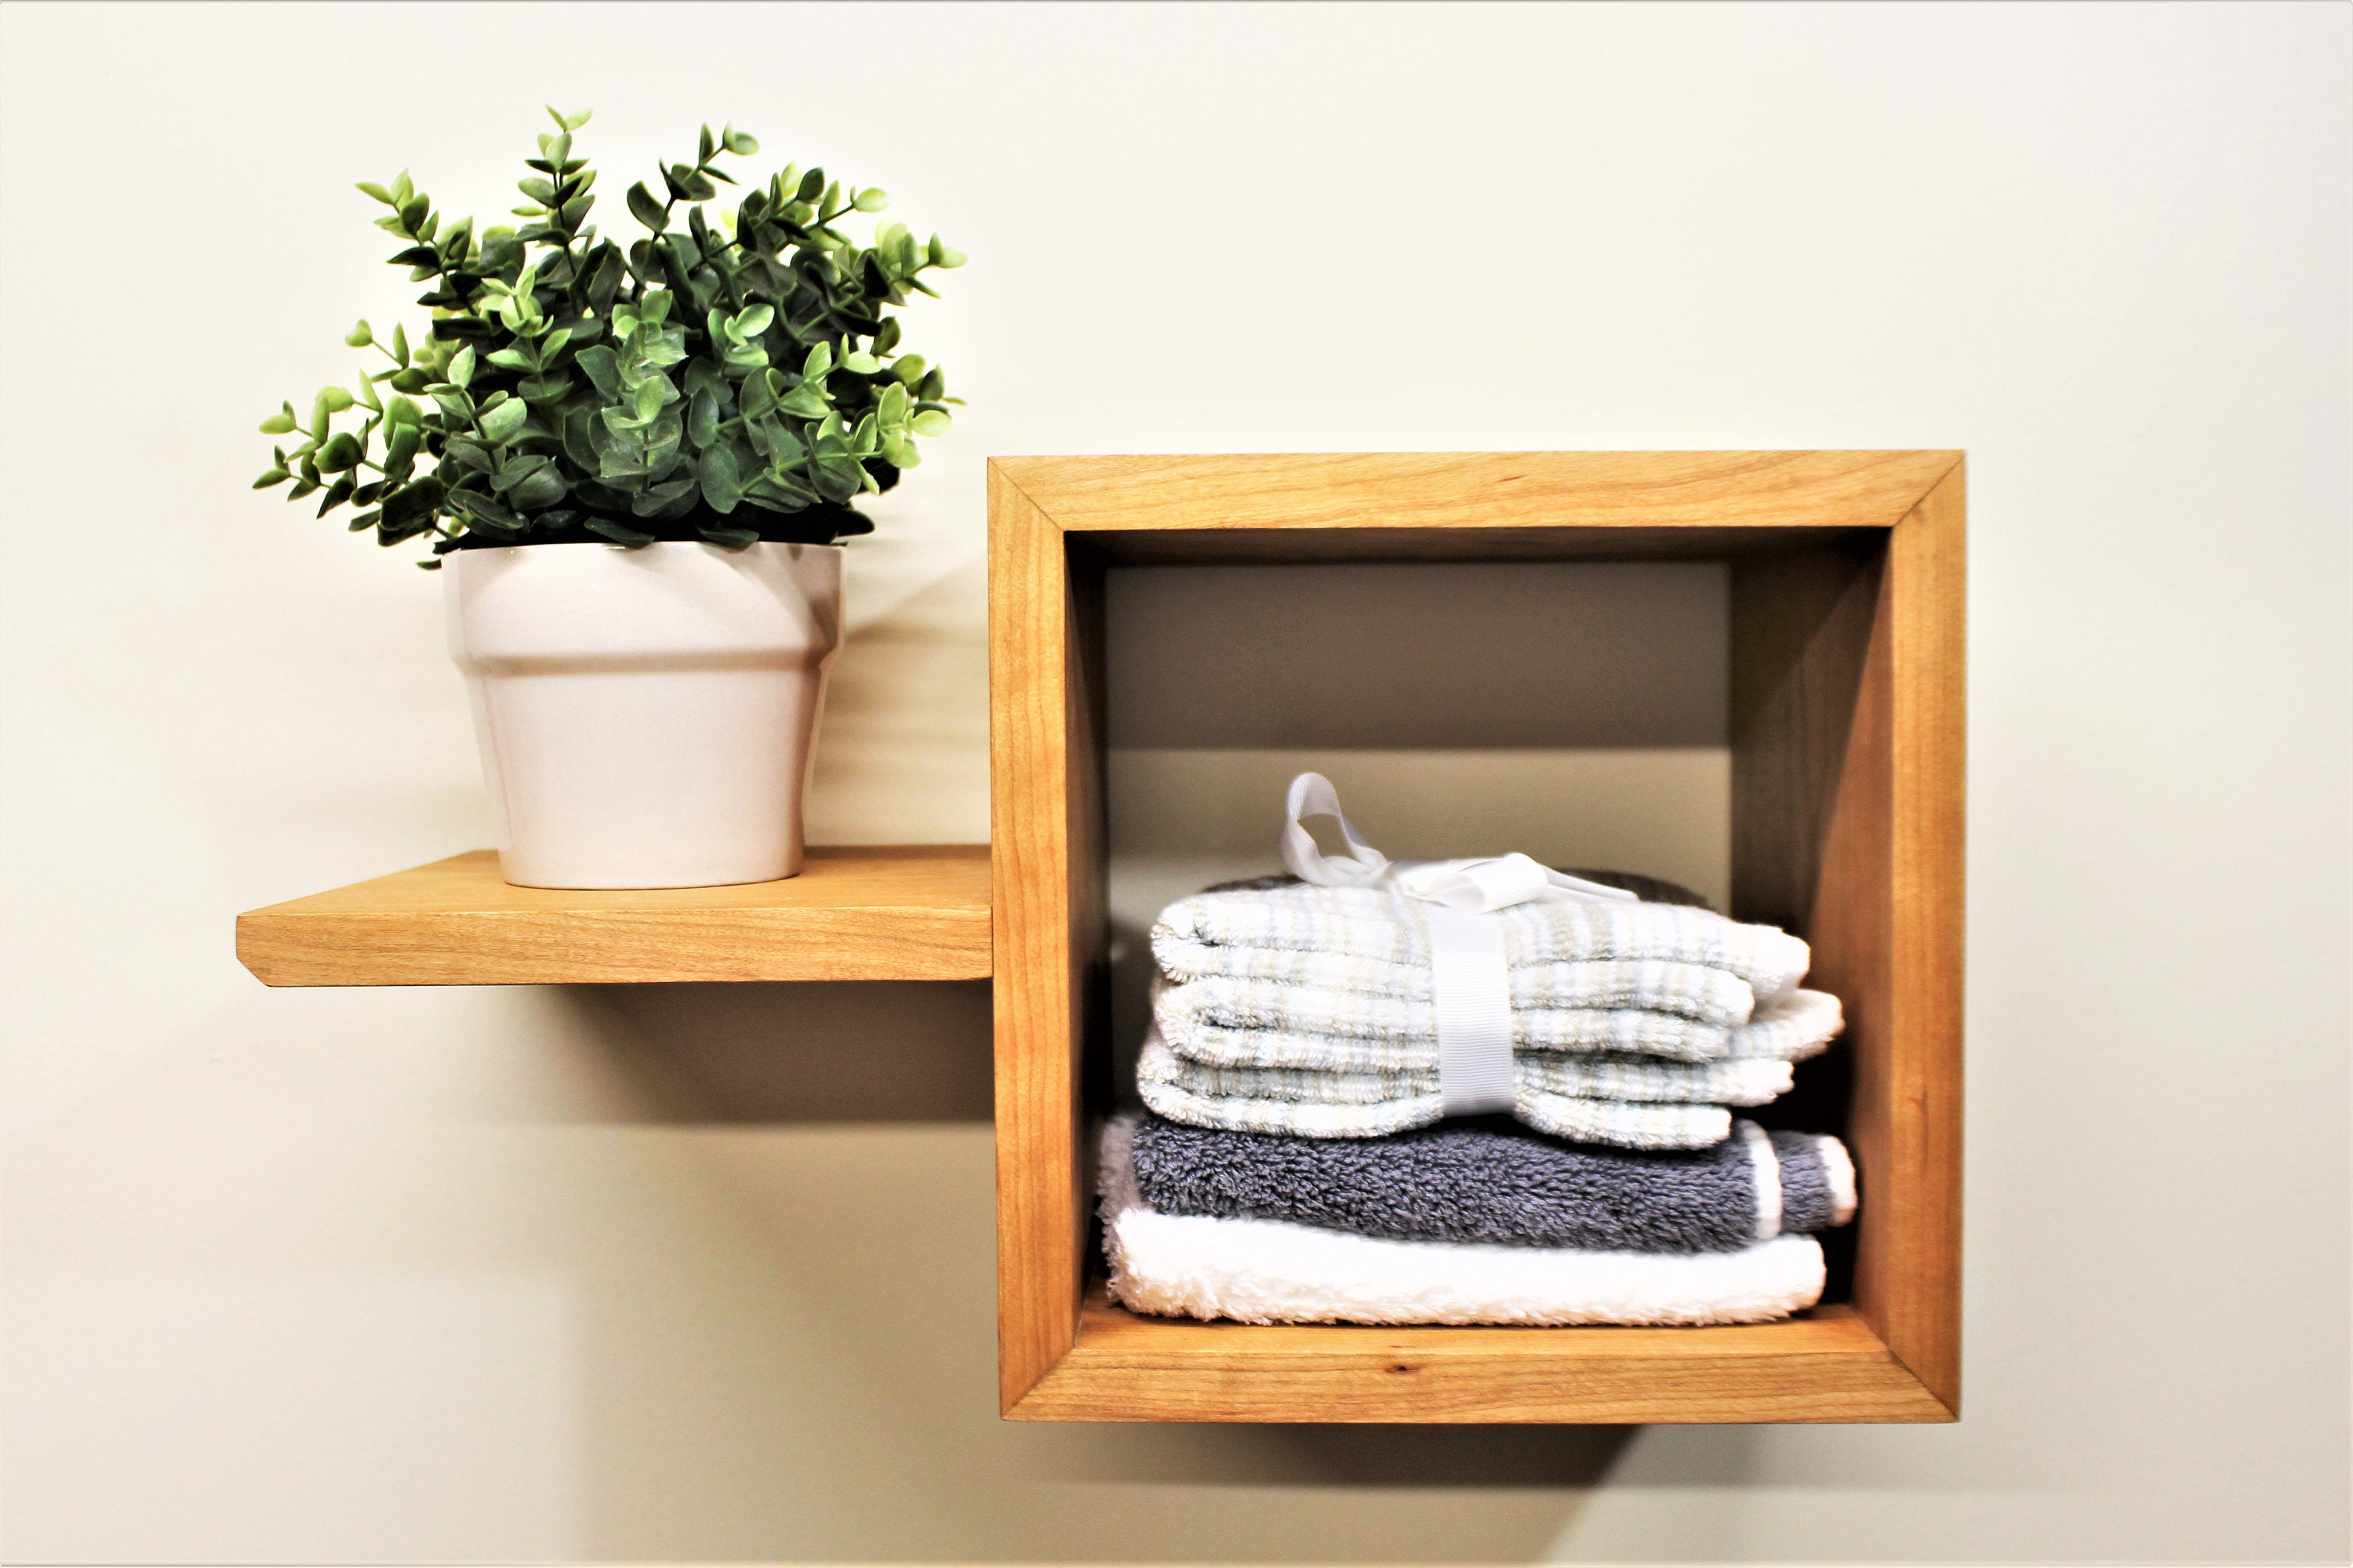 natural finish wooden floating shelf with cubby and accent etsy fullxfull shelves for hallway ture arrangements find coat racks tier metal bookshelf best shredded latex pillow